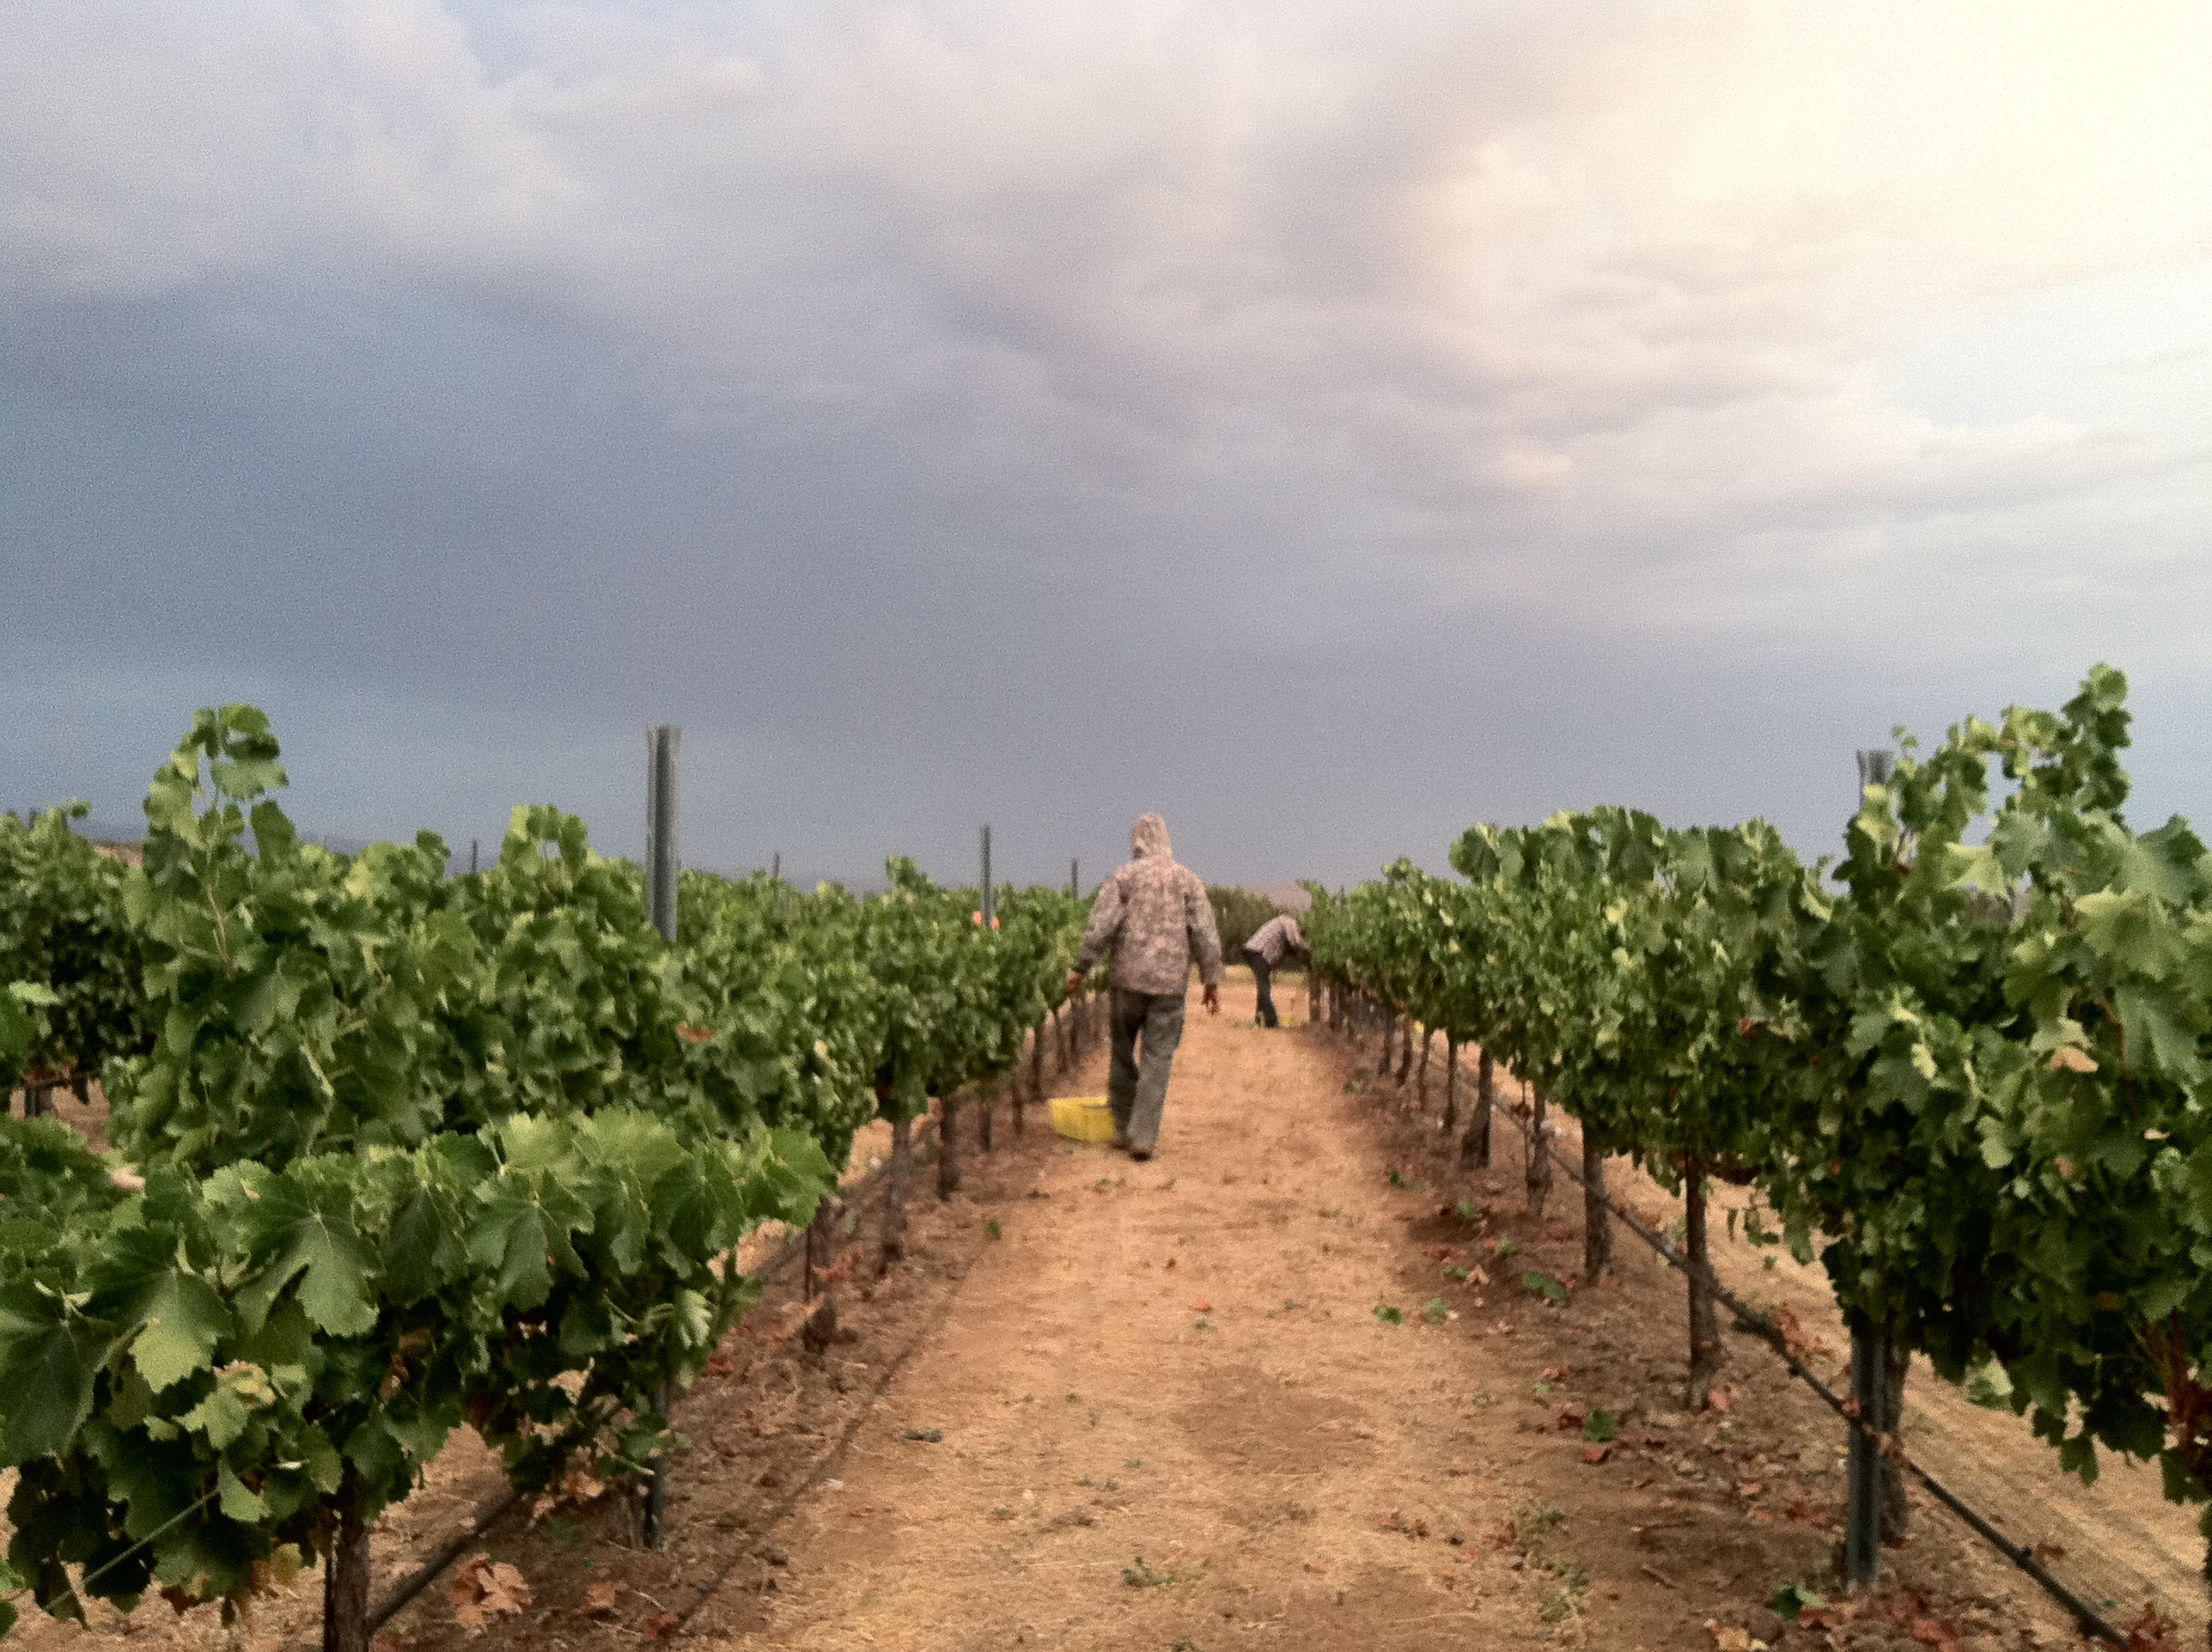 Vineyard workers picking grapes. Links to Vineyards page